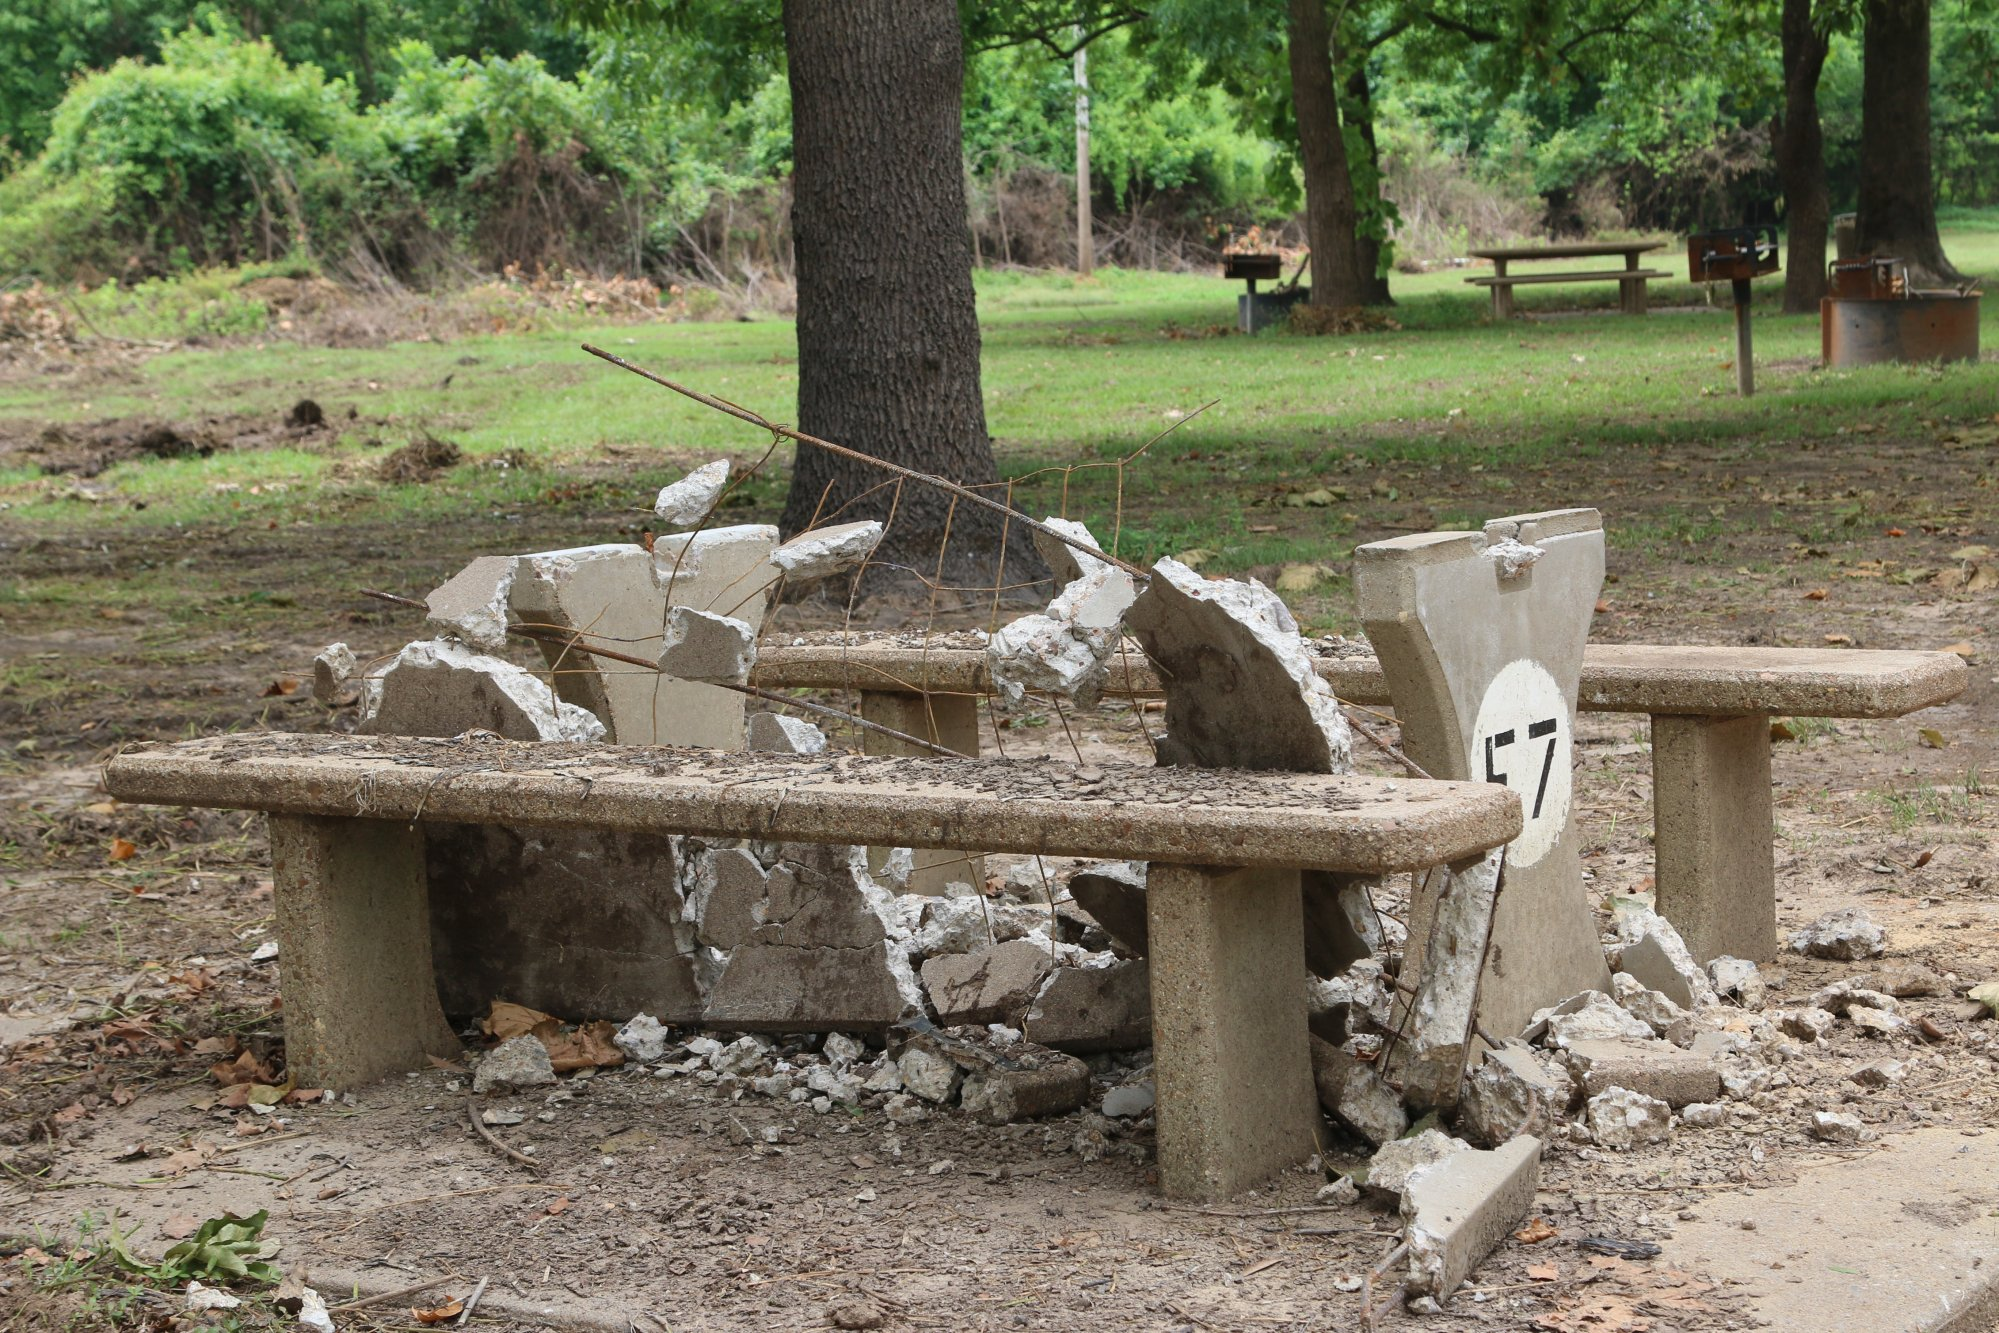 A picnic table lies mangled, one of many damaged during spring flooding.